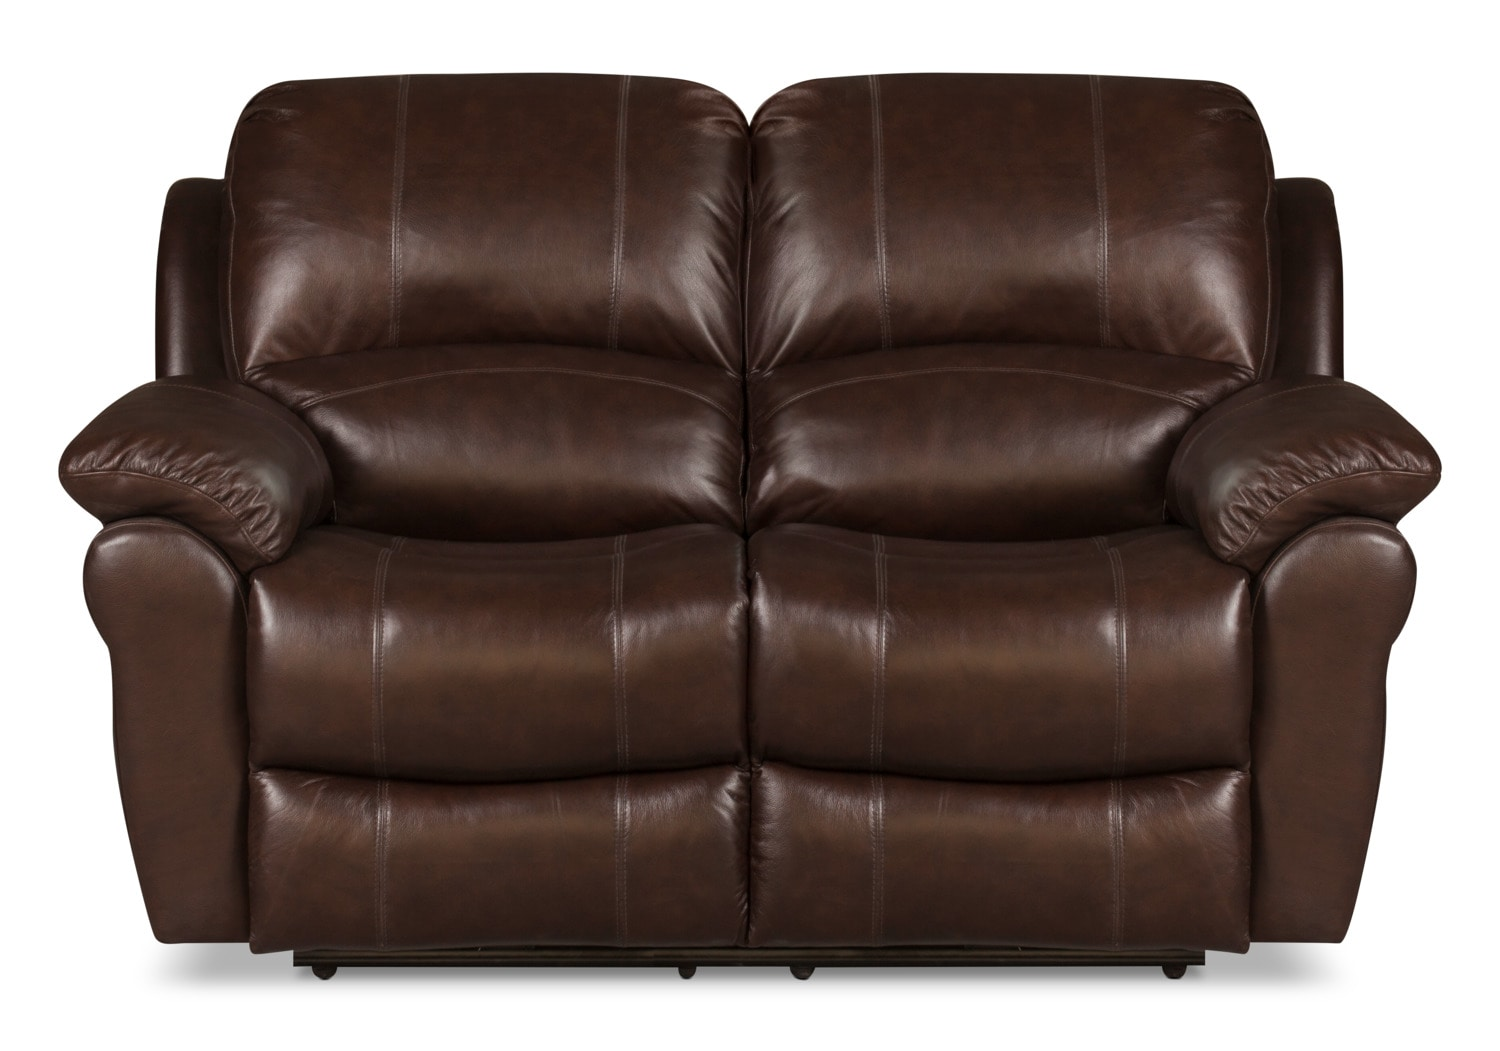 Living Room Furniture - Kobe Genuine Leather Reclining Loveseat – Brown